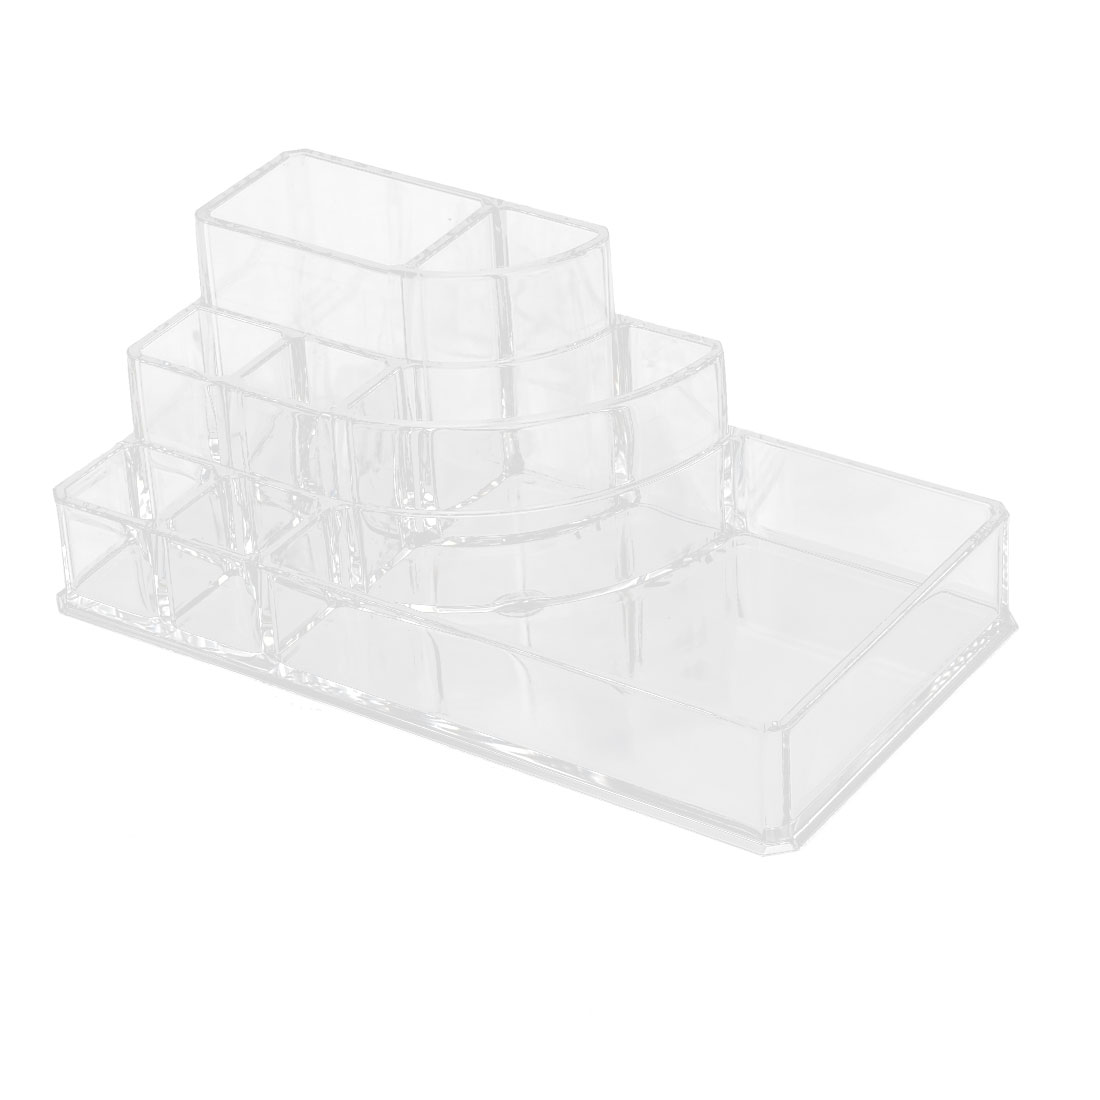 Household Acrylic 8 Slots Jewelry Makeup Storage Box Case Display Organizer Clear